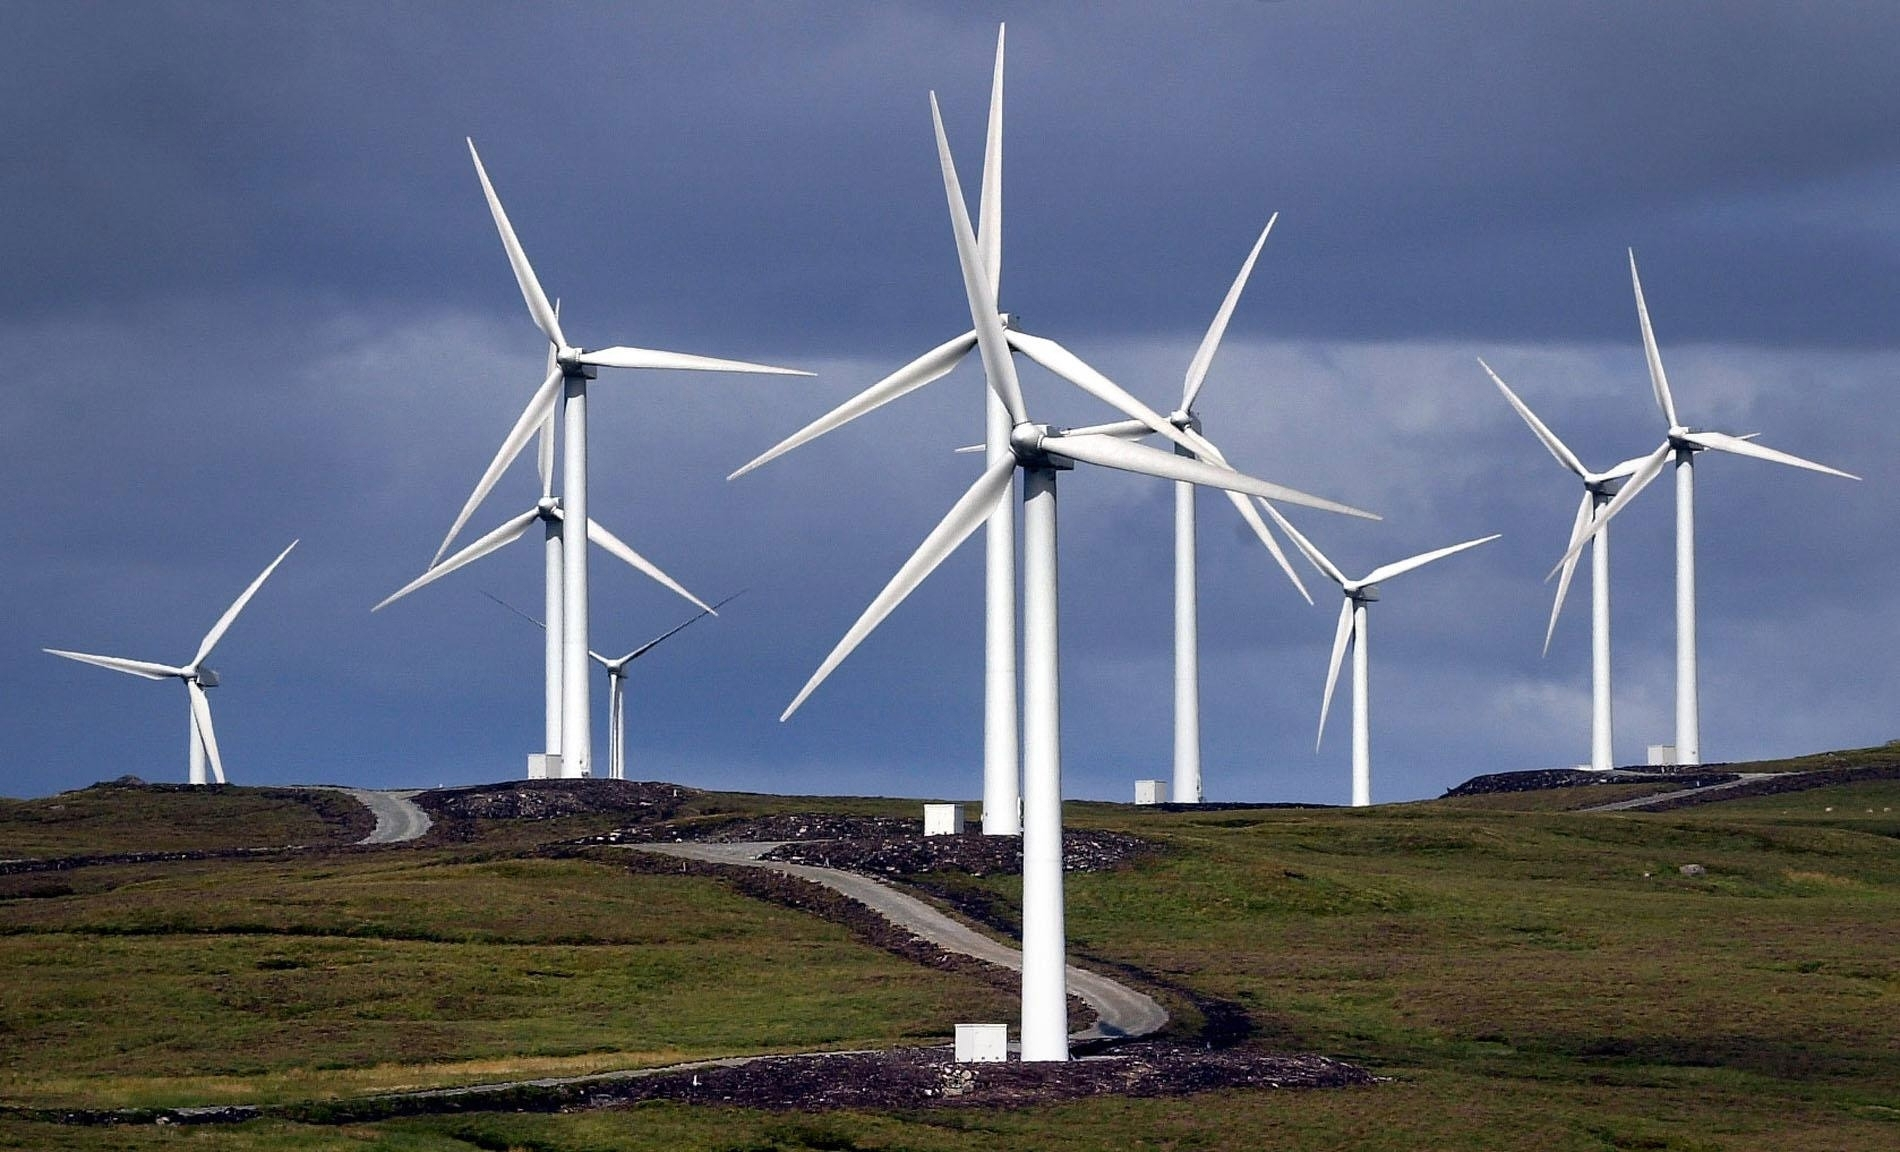 Herald View: Questions over 'supersized' wind farms